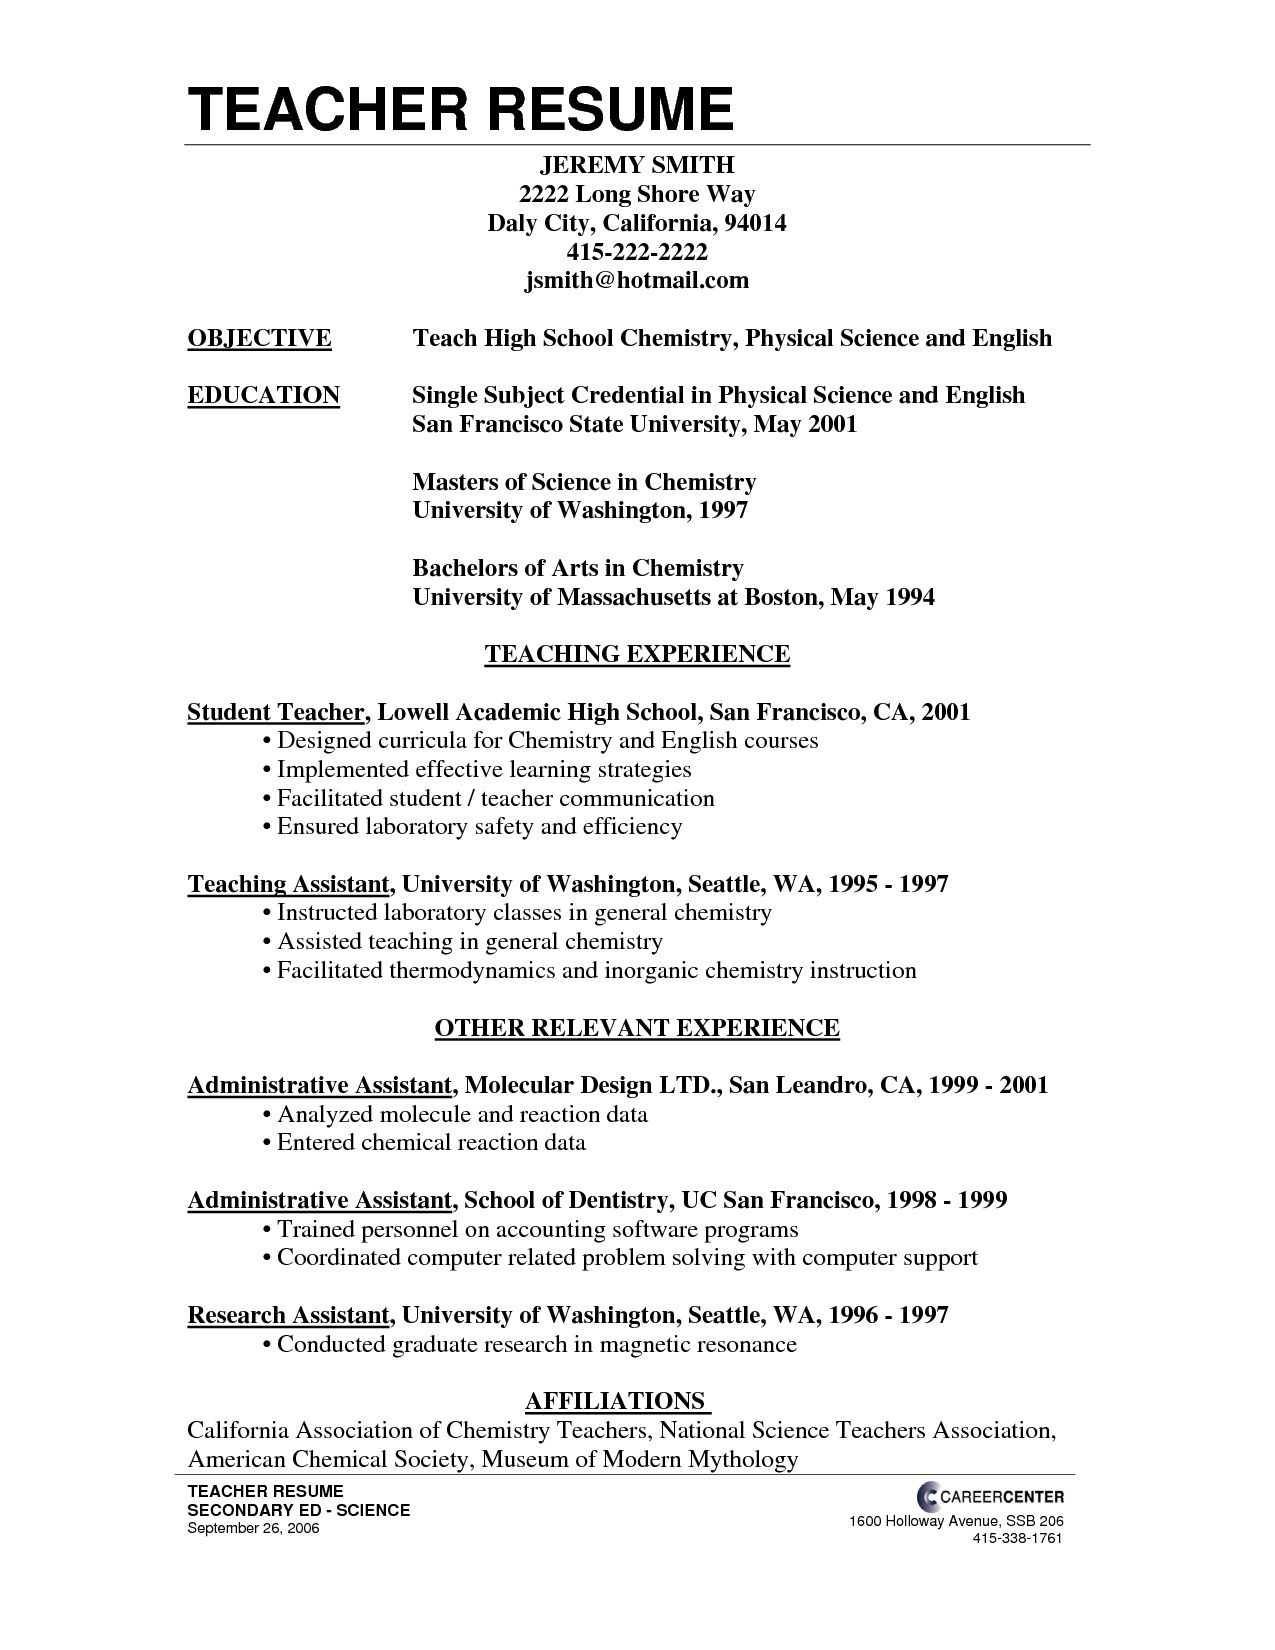 Resume Templates For Teachers High School Teacher Resume  Getha Krisha  Pinterest  Teacher